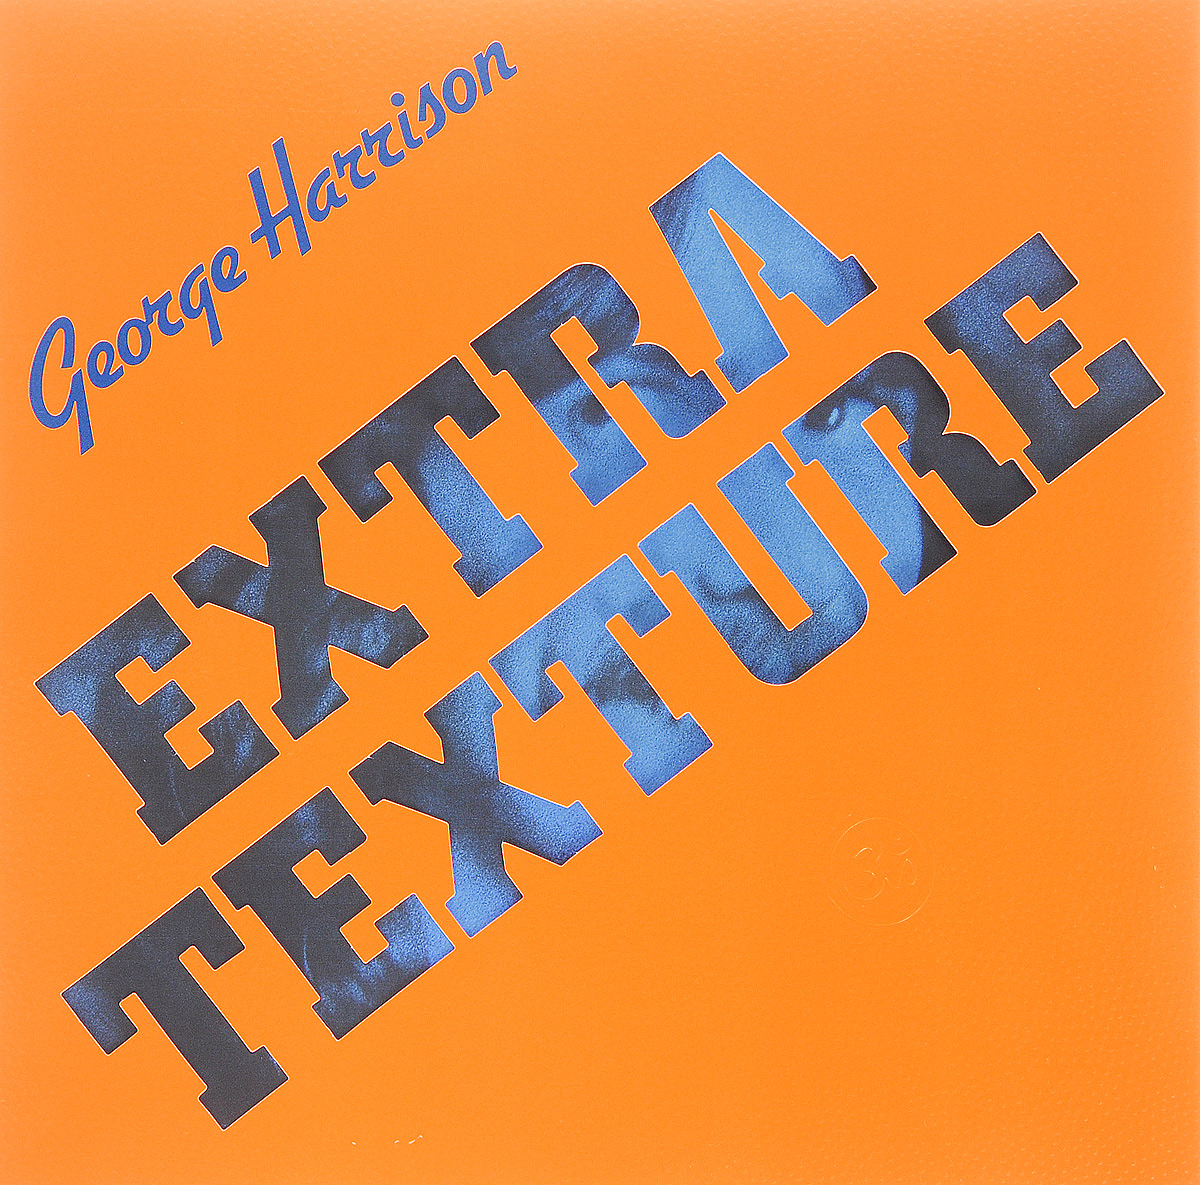 Джордж Харрисон George Harrison. Extra Texture (Read All About It) (LP) джордж харрисон george harrison extra texture read all about it